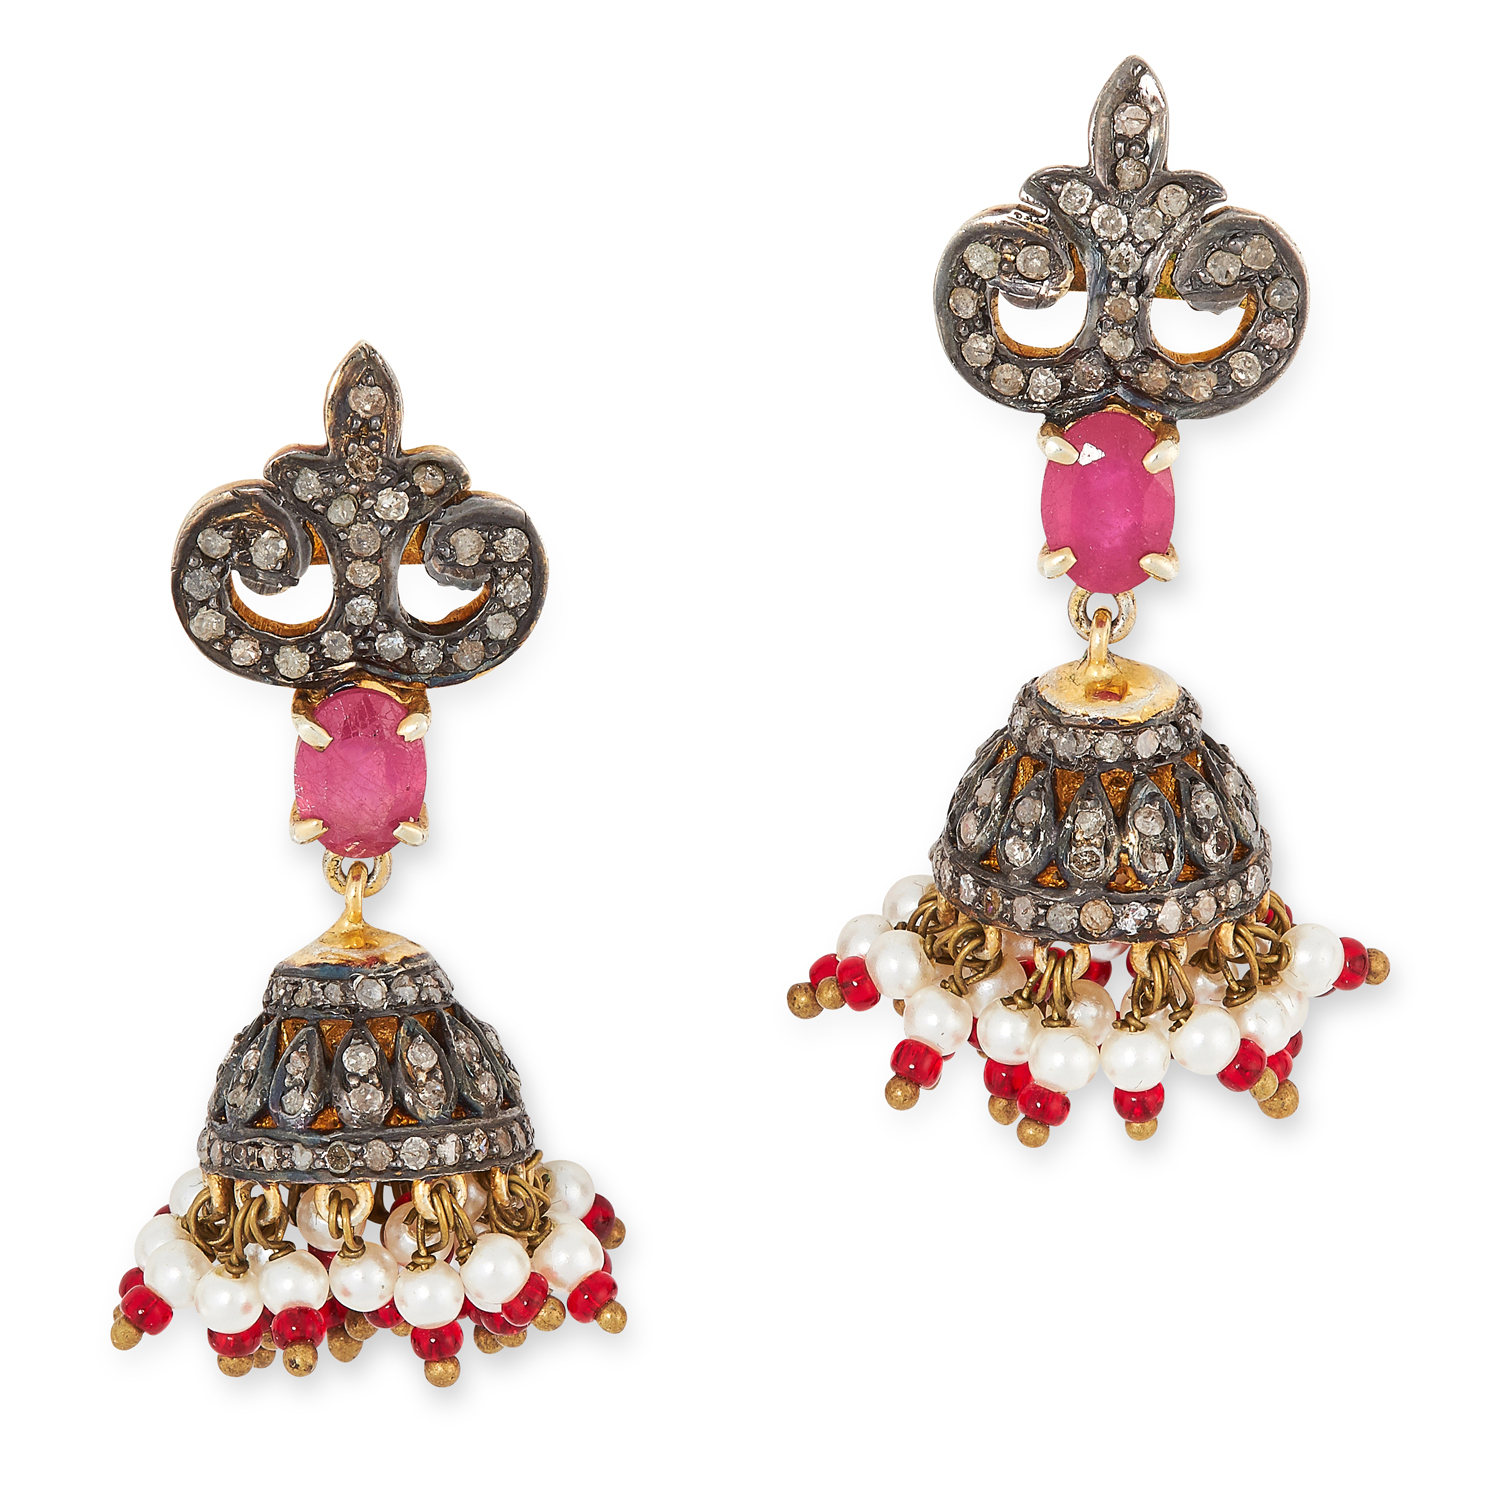 A PAIR OF INDIAN DIAMOND, PEARL AND RUBY EARRINGS set with oval brilliant cut rubies, round cut